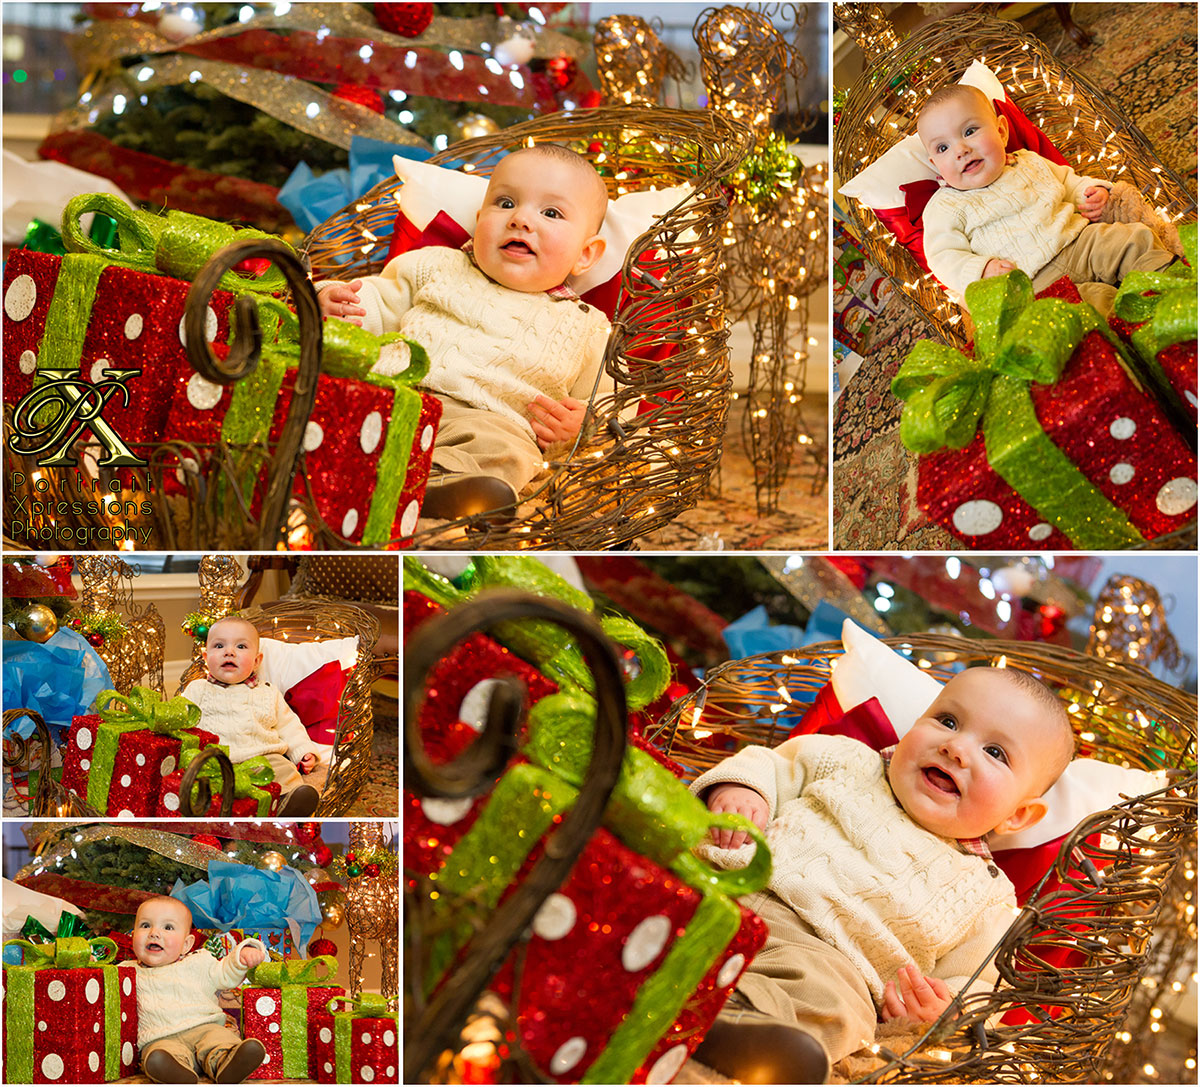 Dylan's first Christmas portraits